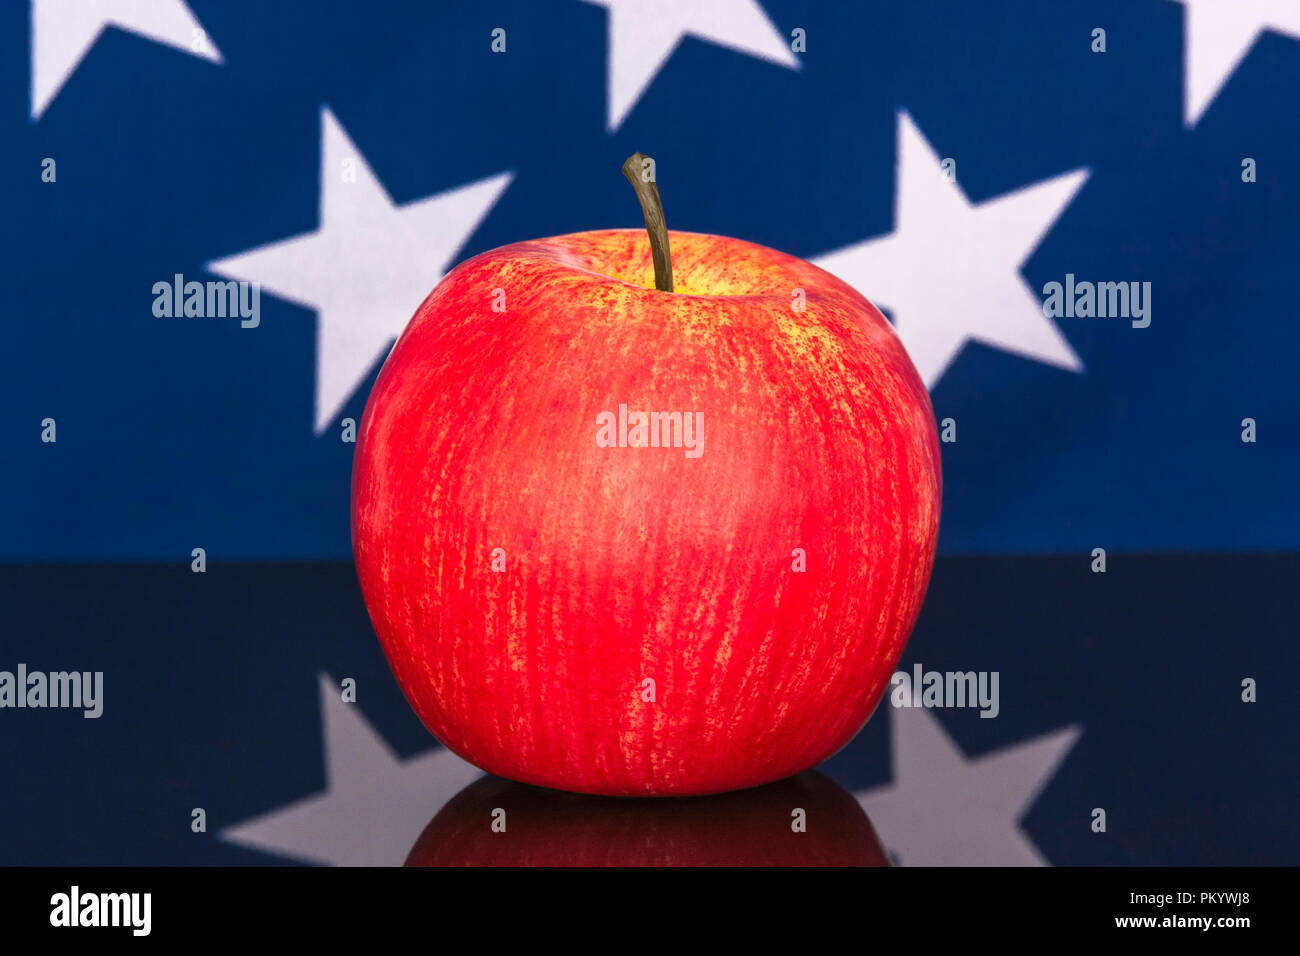 Red apples with U..S American flag / Stars and Stripes - metaphor US apple industry, Apple Day, and Chinese trade tariffs on imports of U.S. apples. - Stock Image